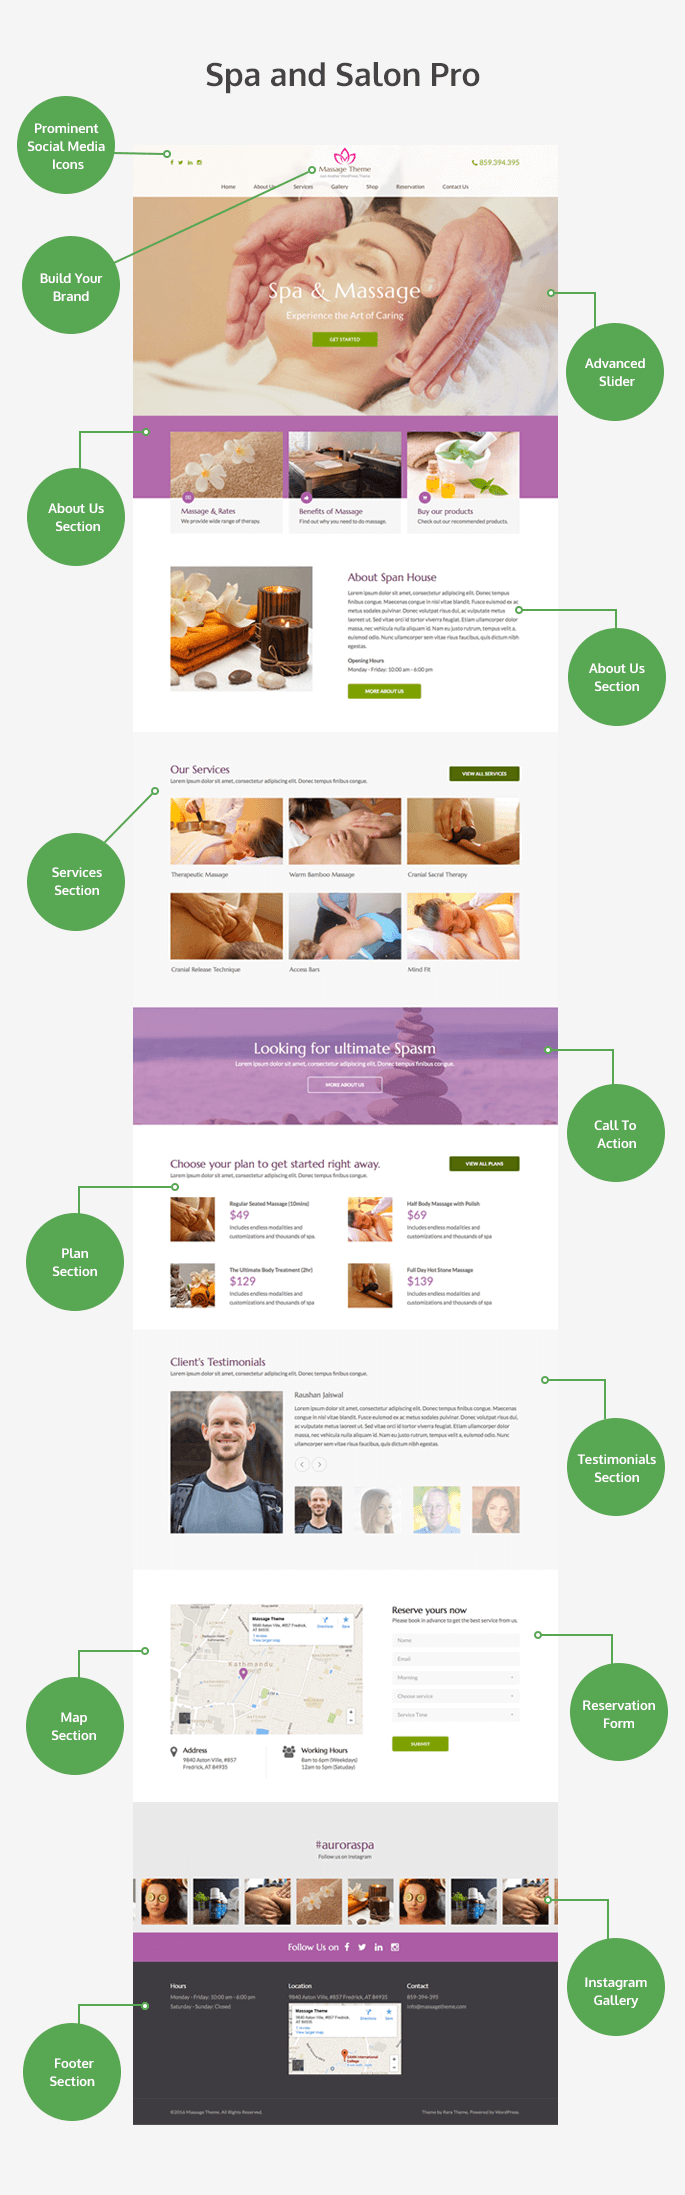 features of Spa and Salon Pro WordPress Theme